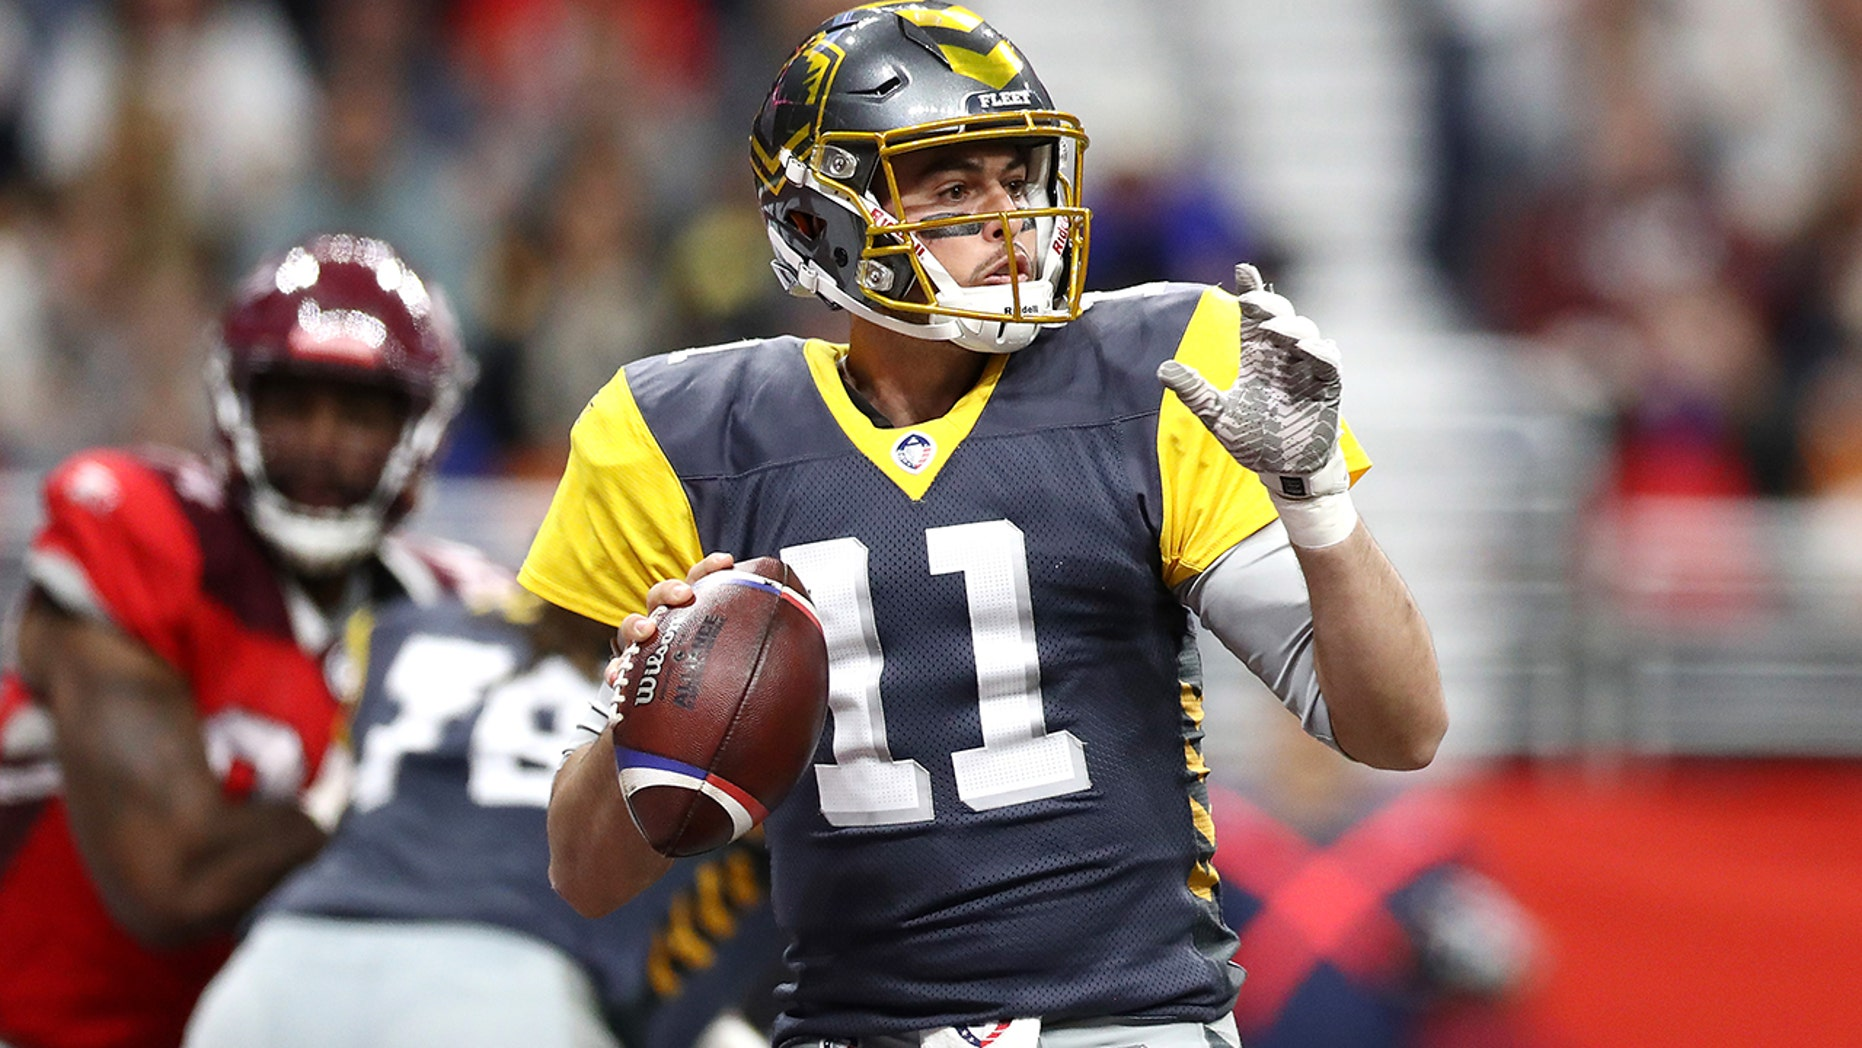 Mike Bercovici #11 of the San Diego Fleet looks to pass the ball during the first half against the the San Antonio Commanders in an Alliance of American Football game at the Alamodome on February 09, 2019 in San Antonio, Texas.